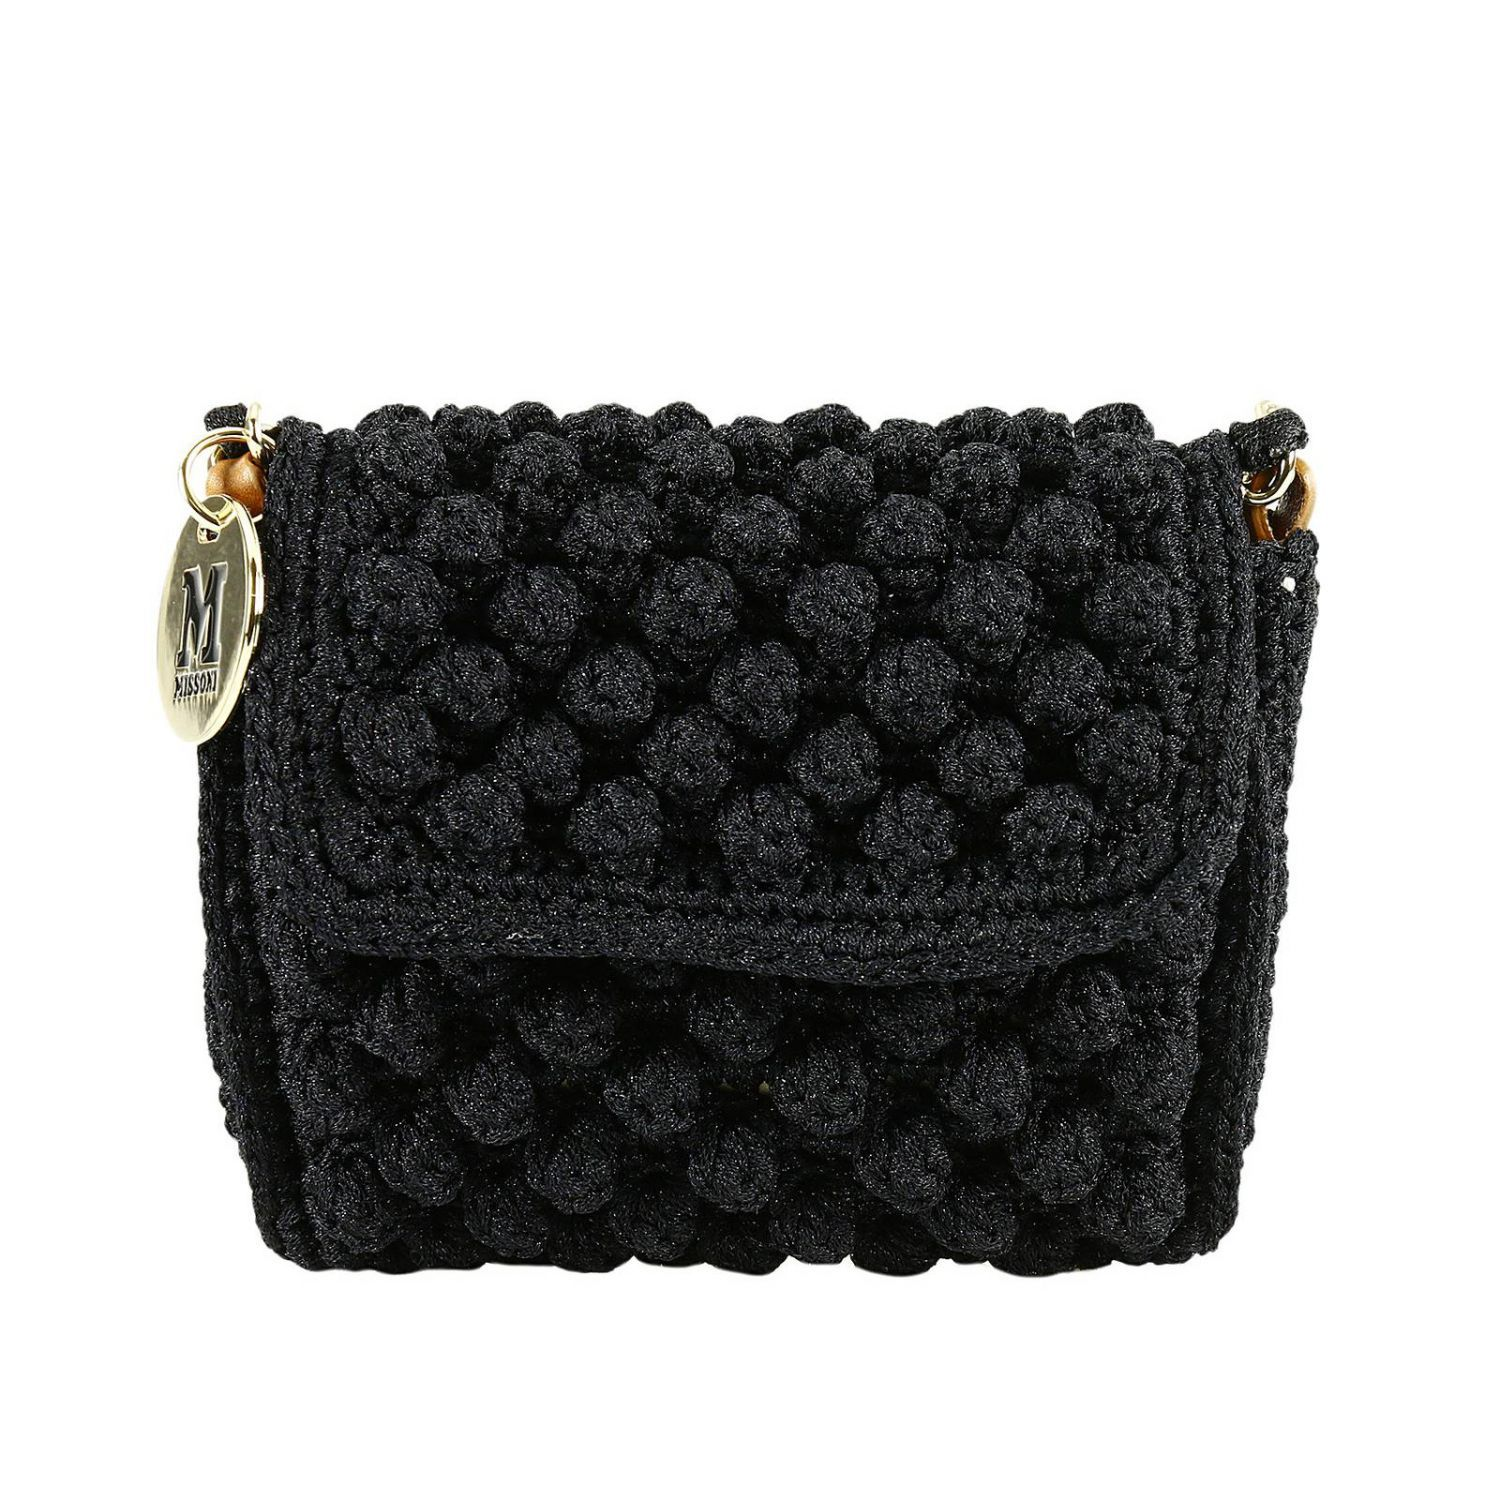 Mini Bag Shoulder Bag Women M Missoni